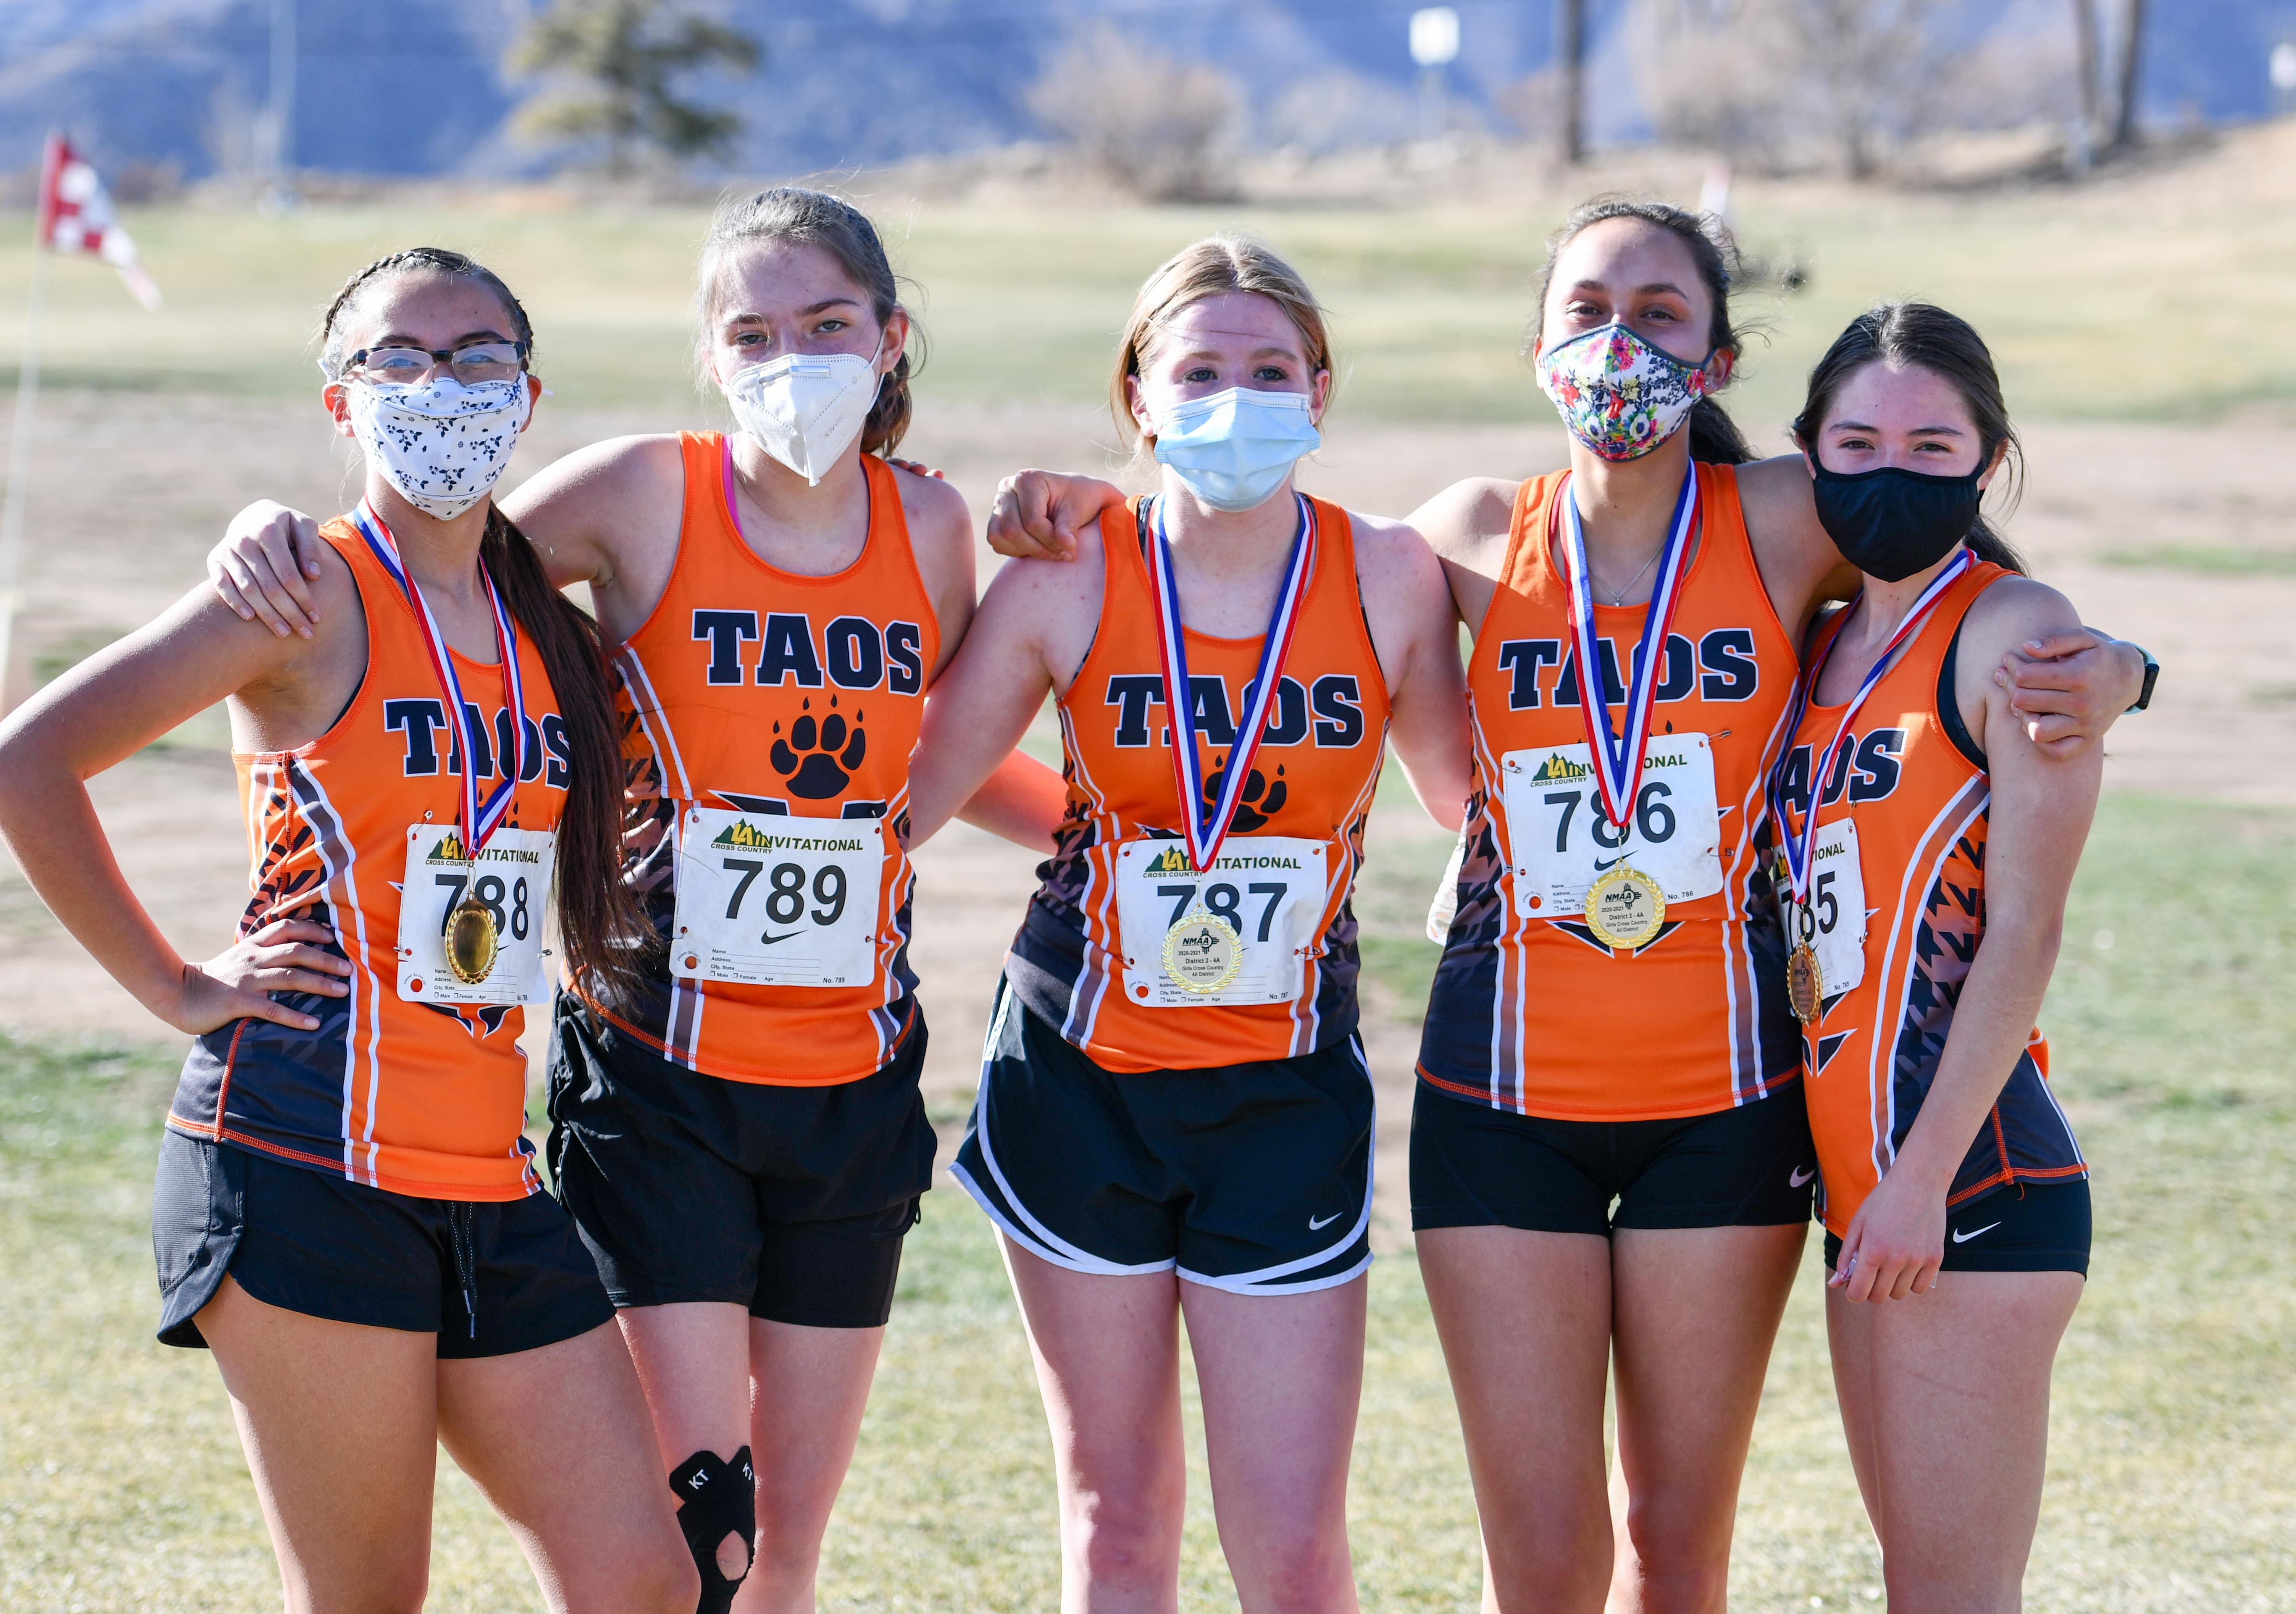 Taos Cross Country Team